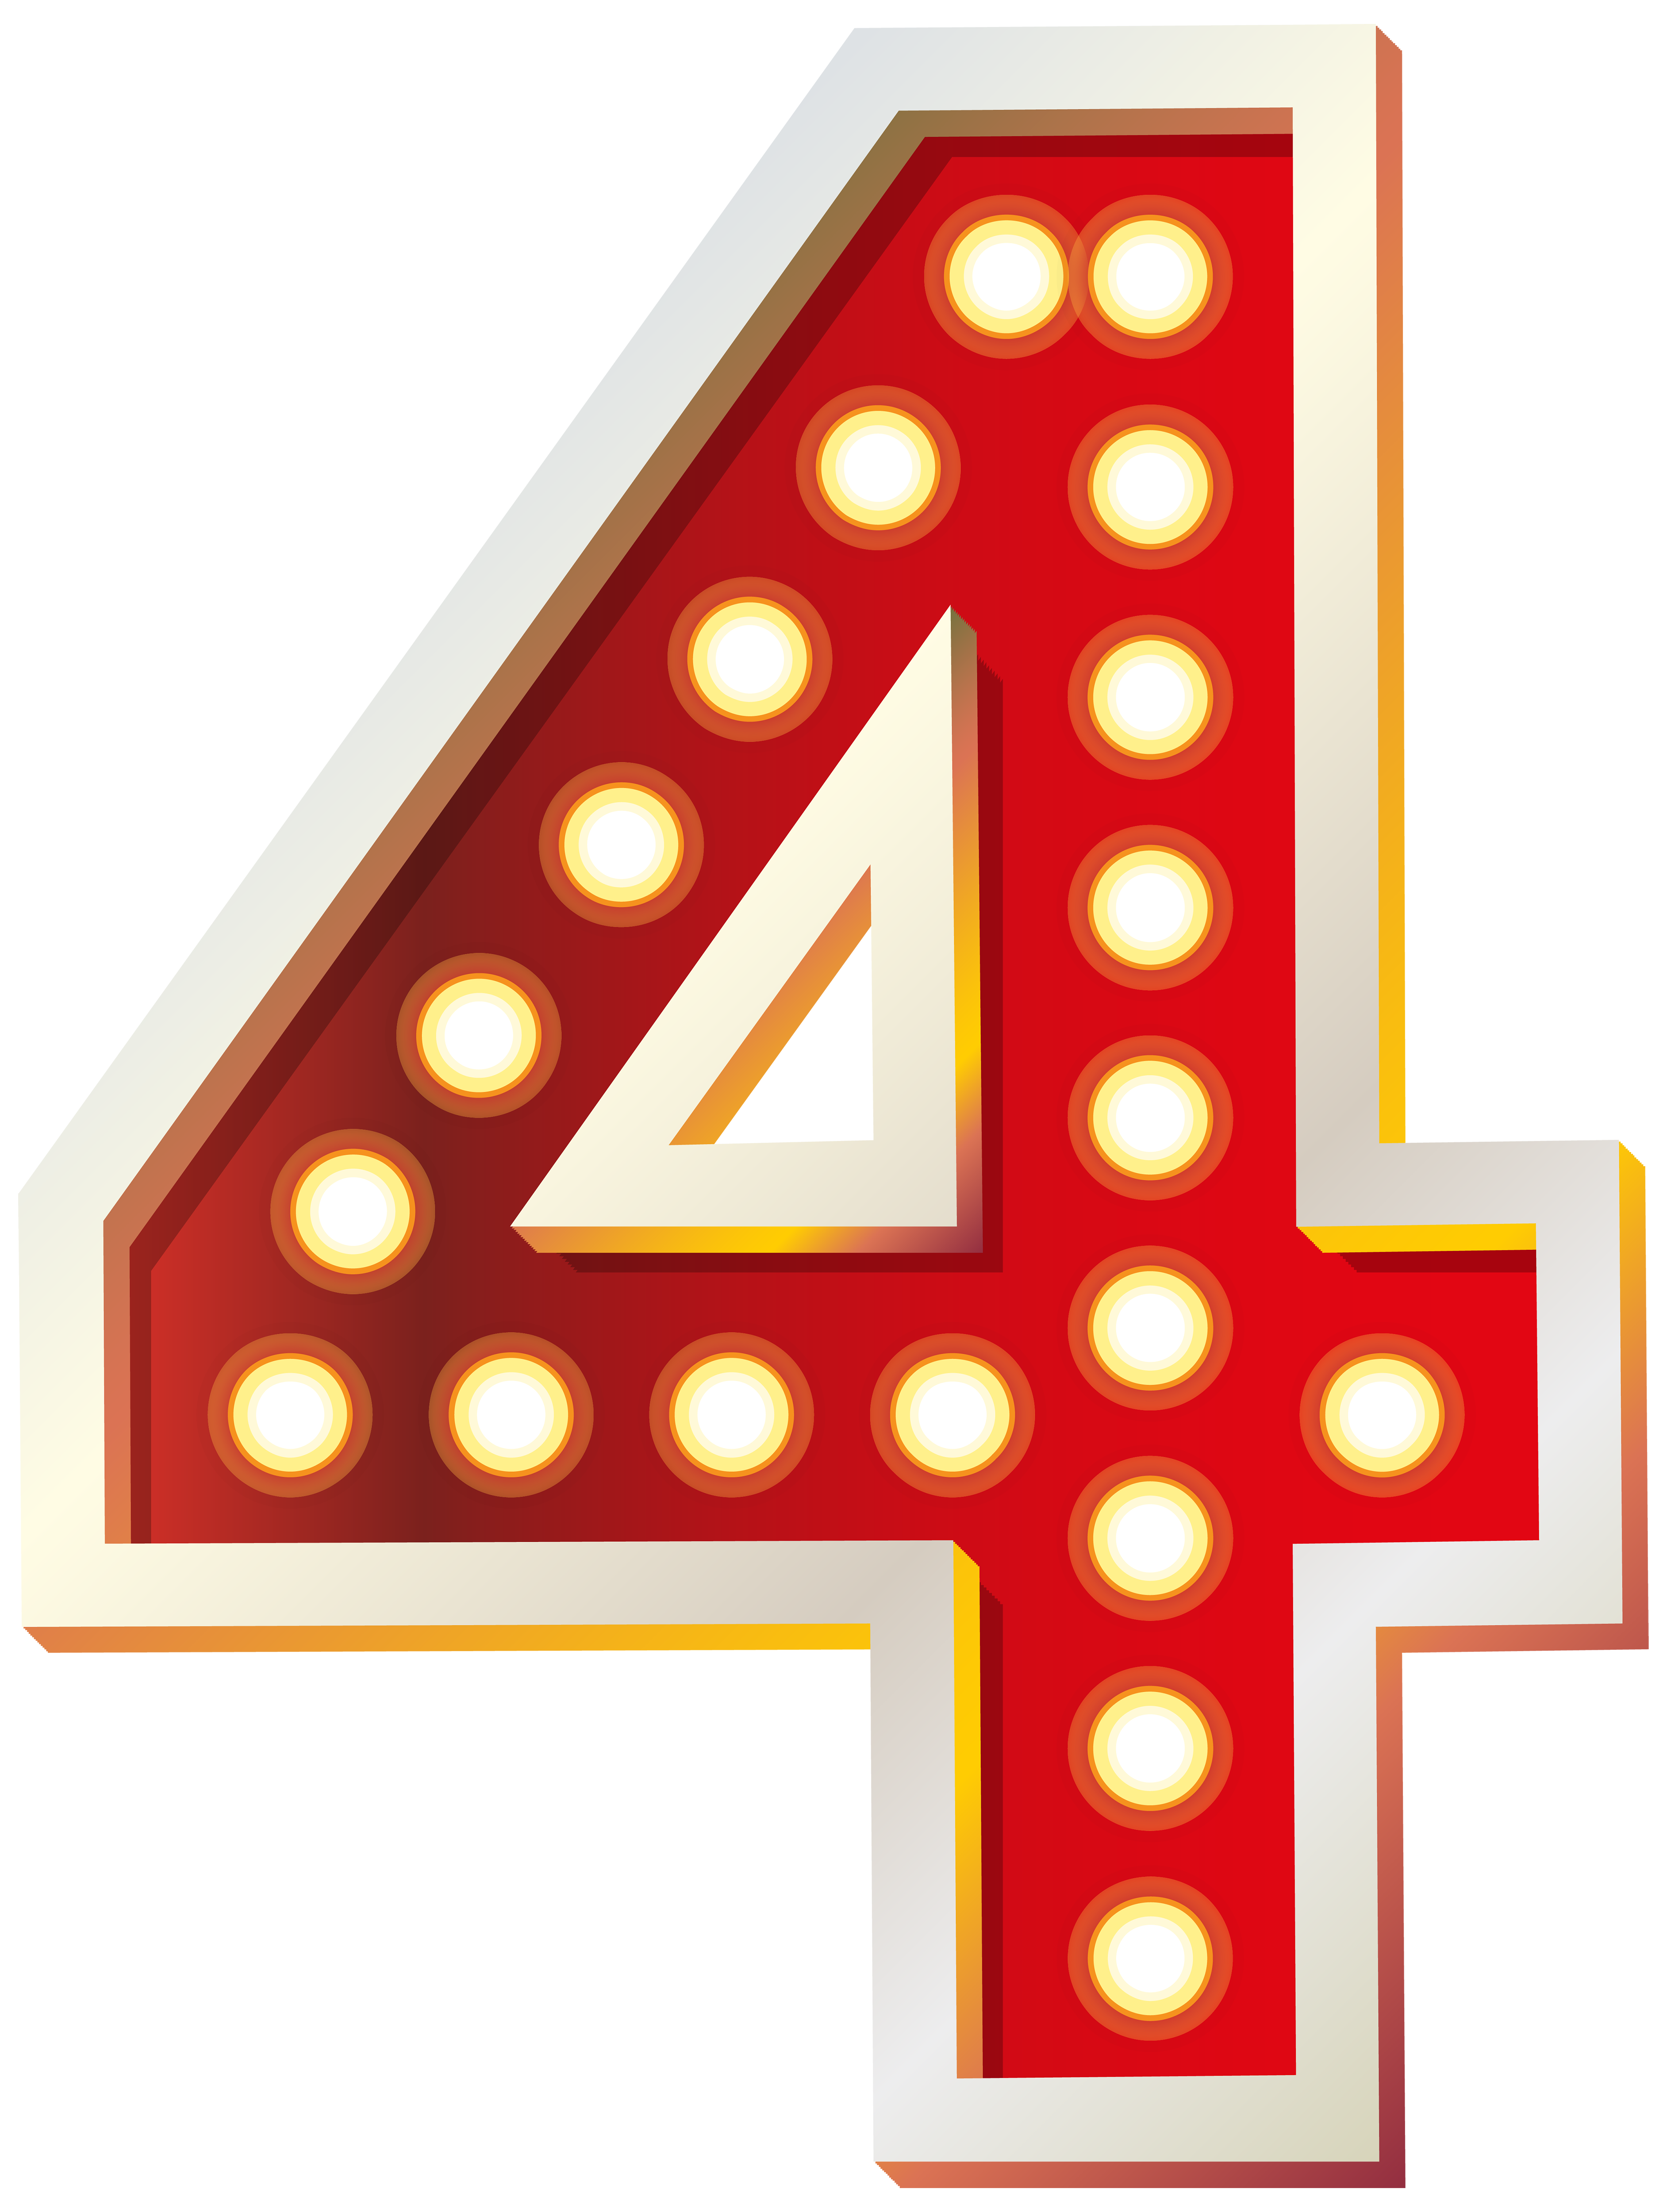 Red Number Four with Lights PNG Clip Art Image.